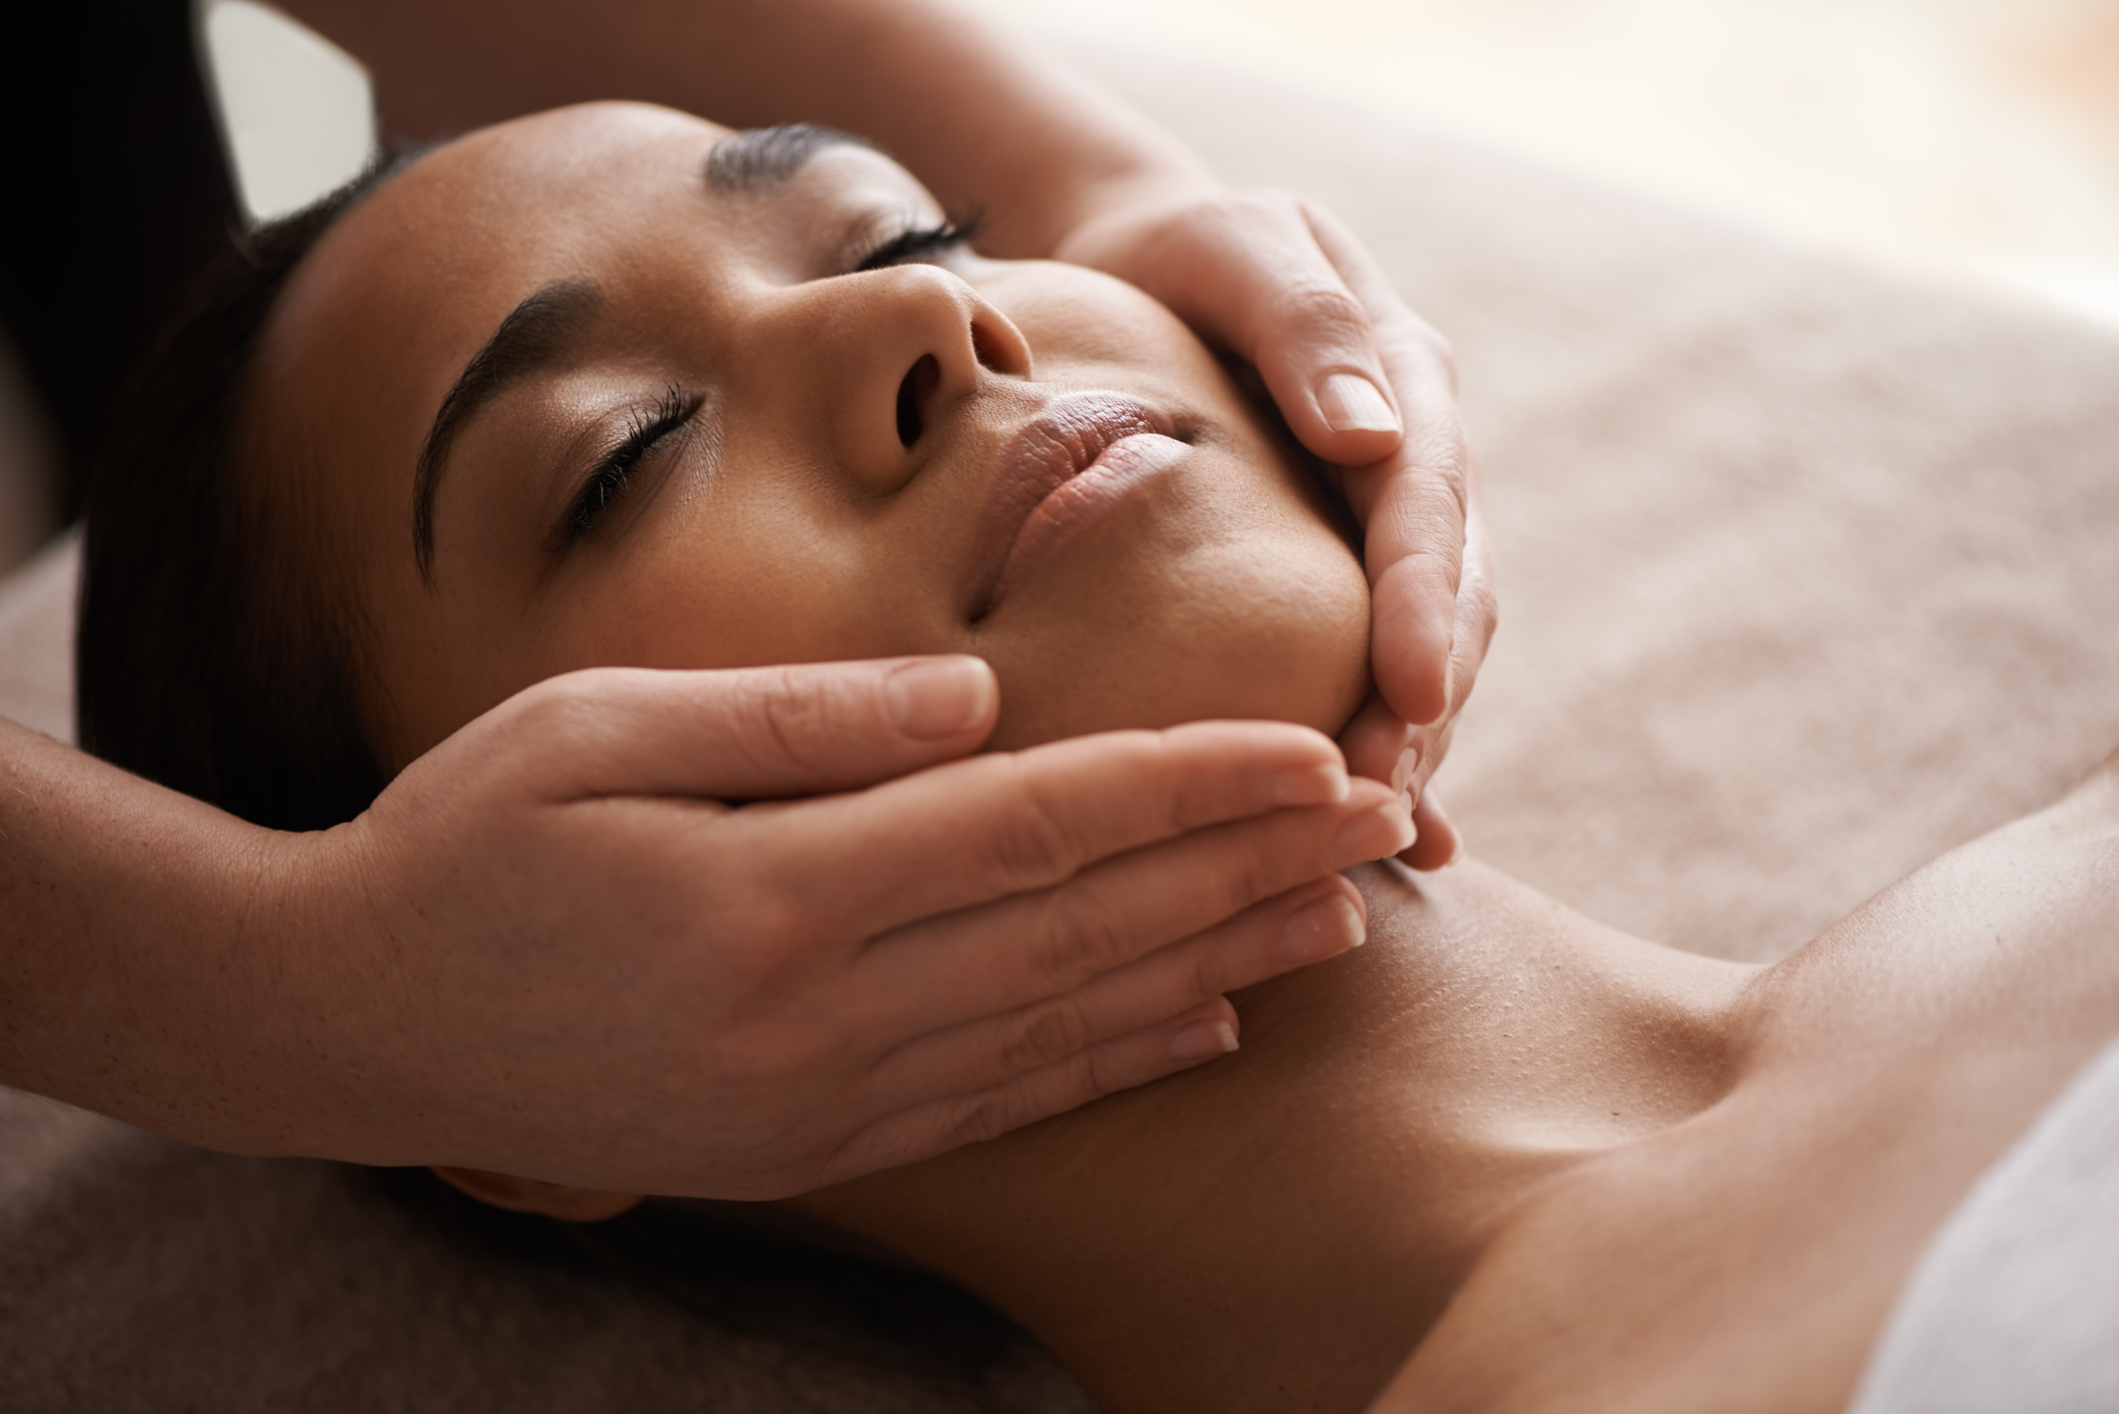 Organic facials - Relax deeply into a rejuvenating face massage using the highest quality facial oils to pamper your skin.